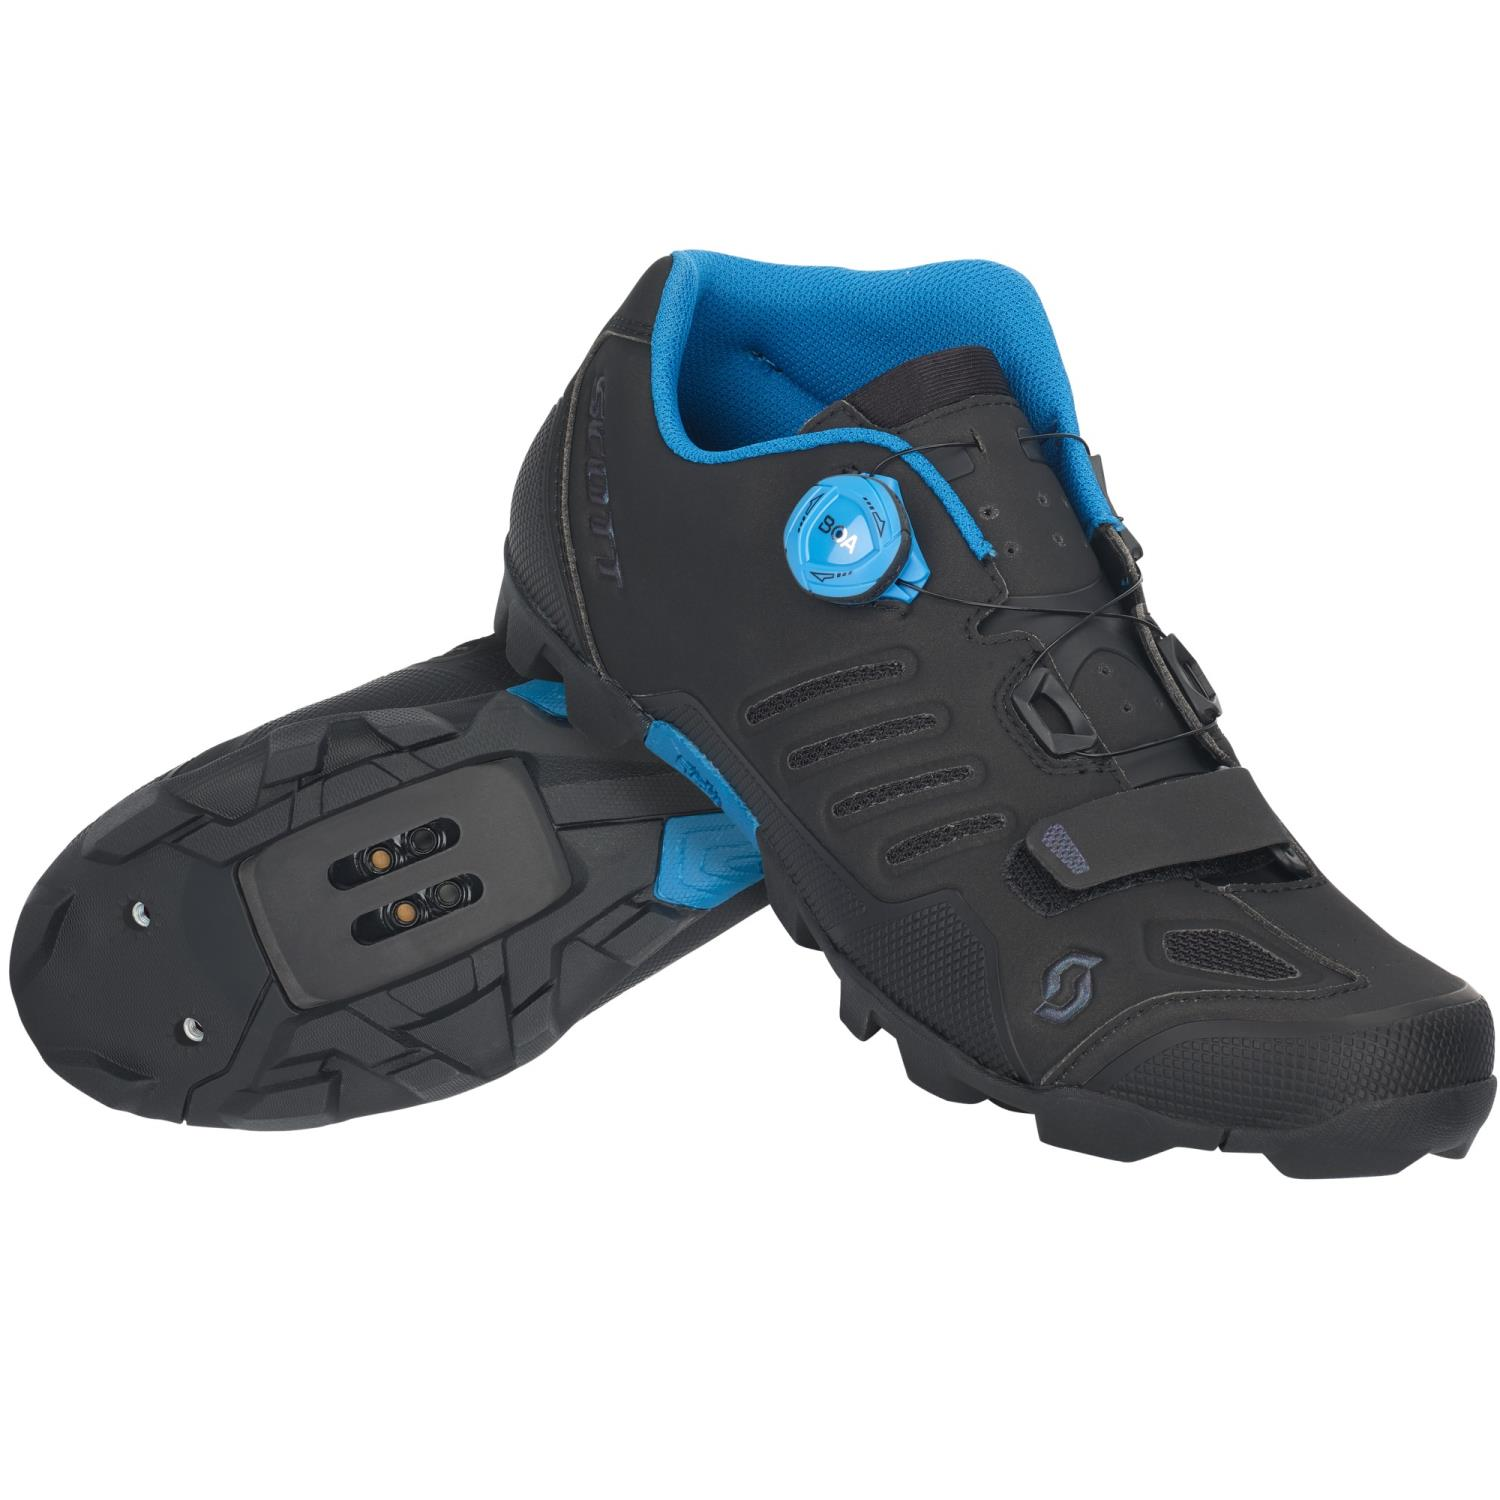 SCOTT Shoe MTB Shr-alp R